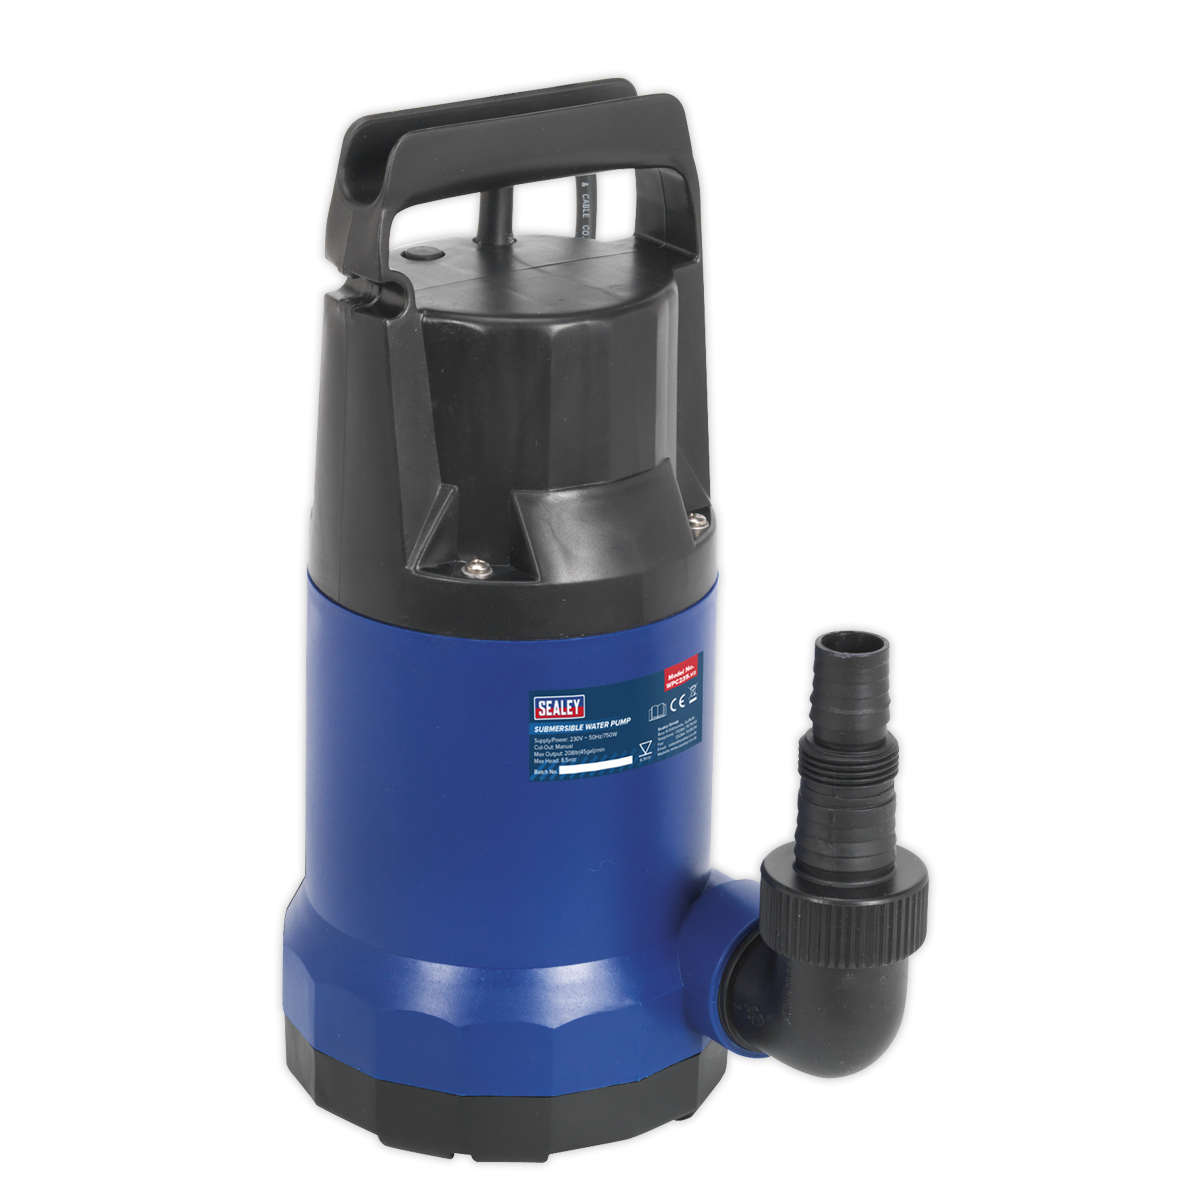 Submersible Water Pump 208ltr min 230V   SEALEY WPC235 by Sealey   New